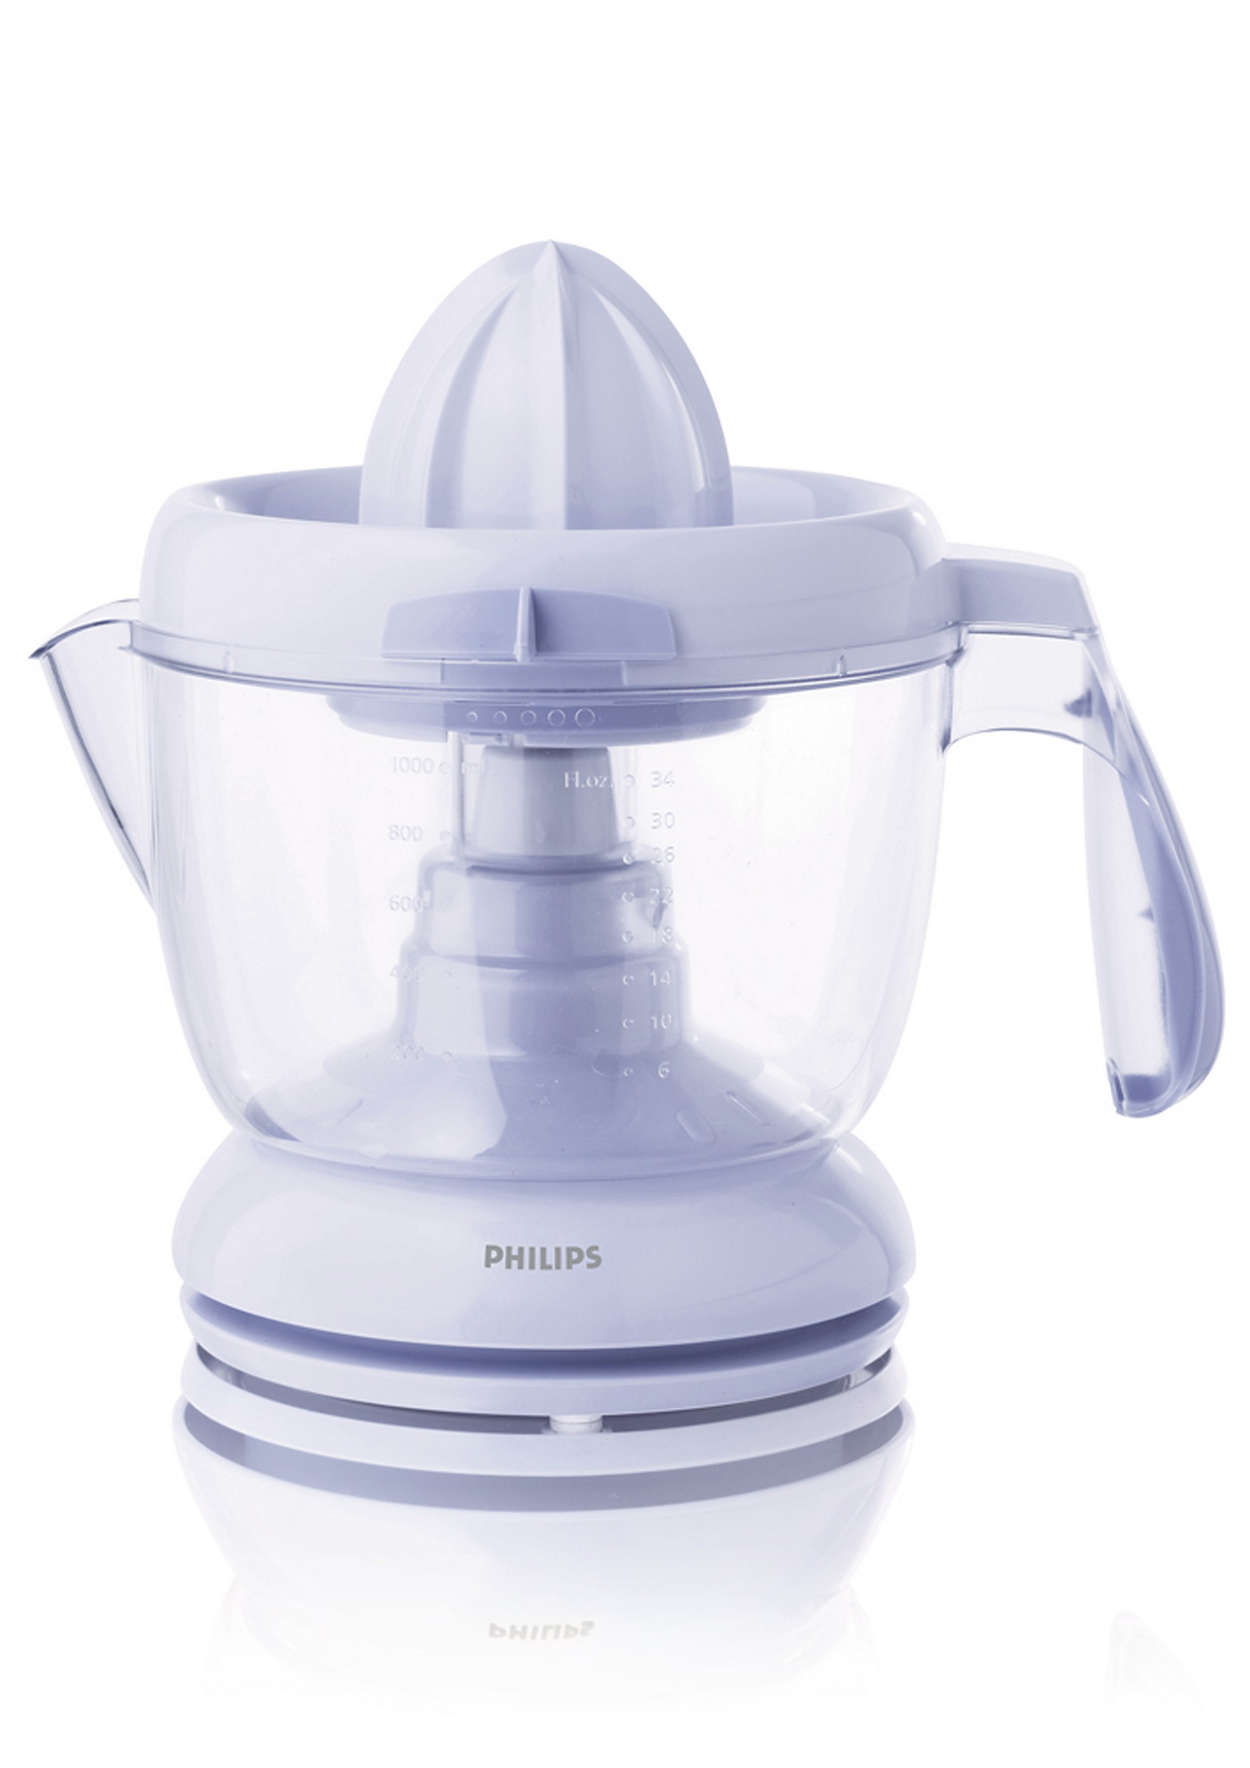 presse agrumes hr2792 35 philips